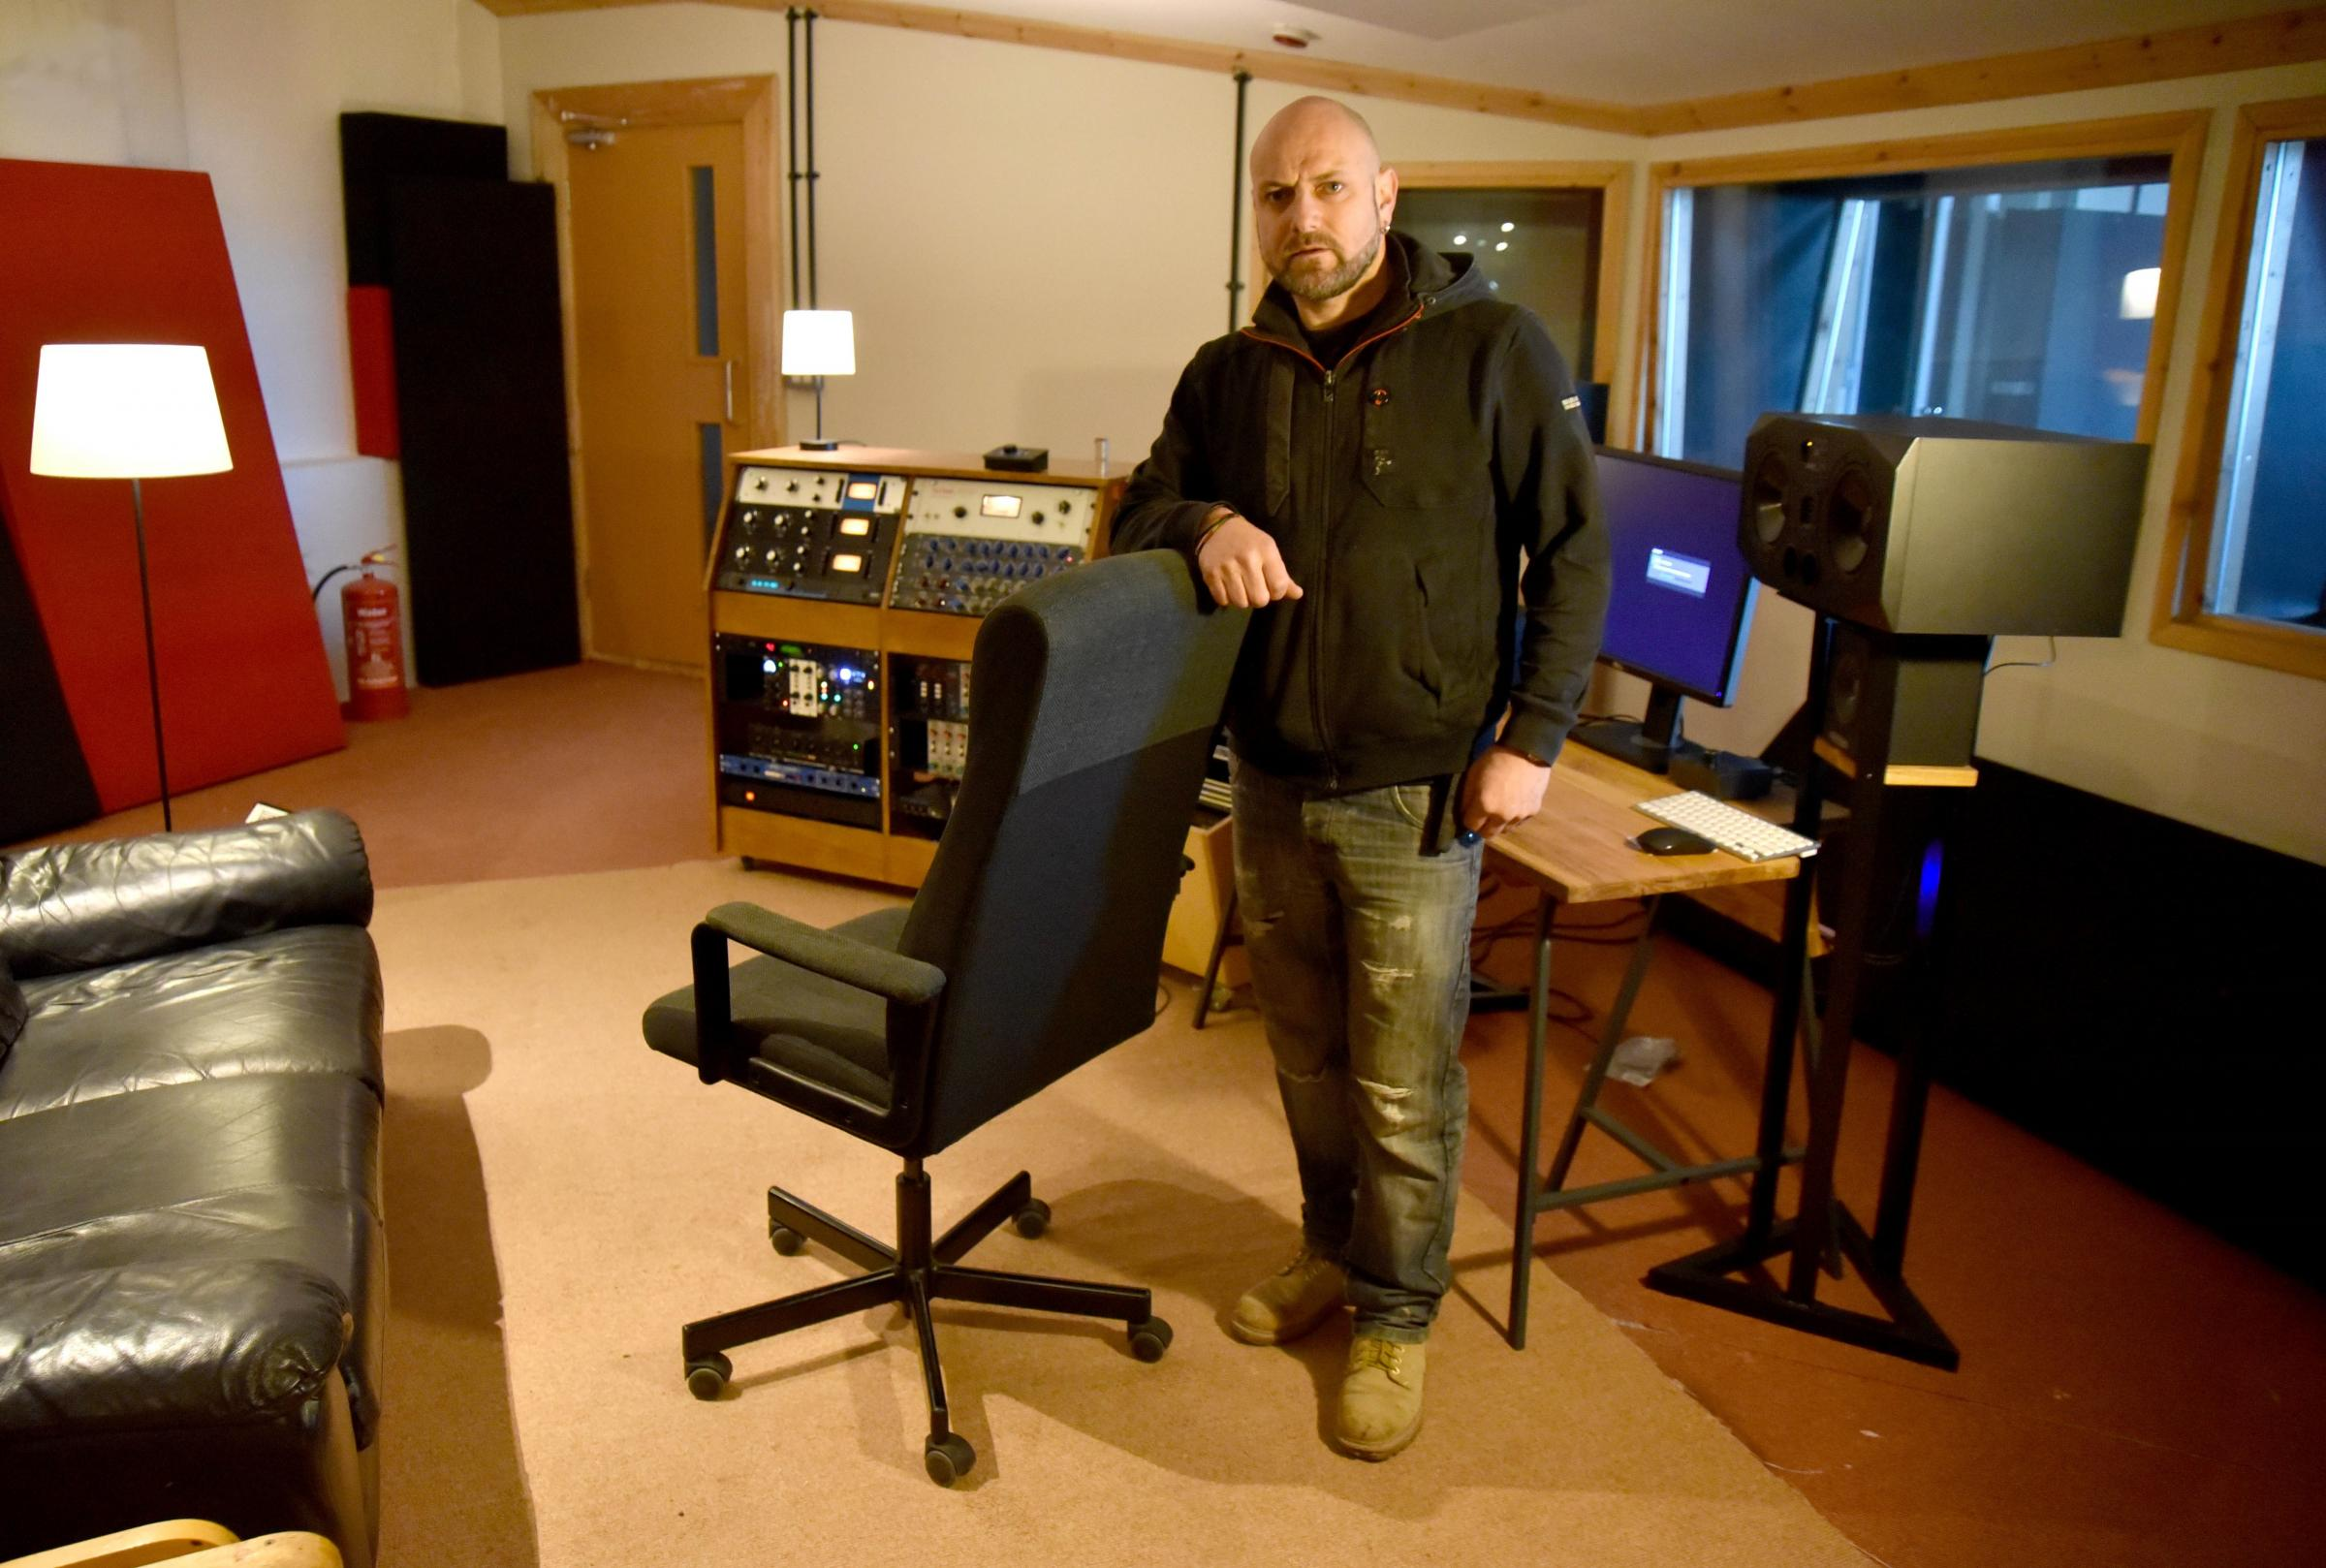 Studio owner Jason Brooks to open new Tapestry music venue in Dudley Hill